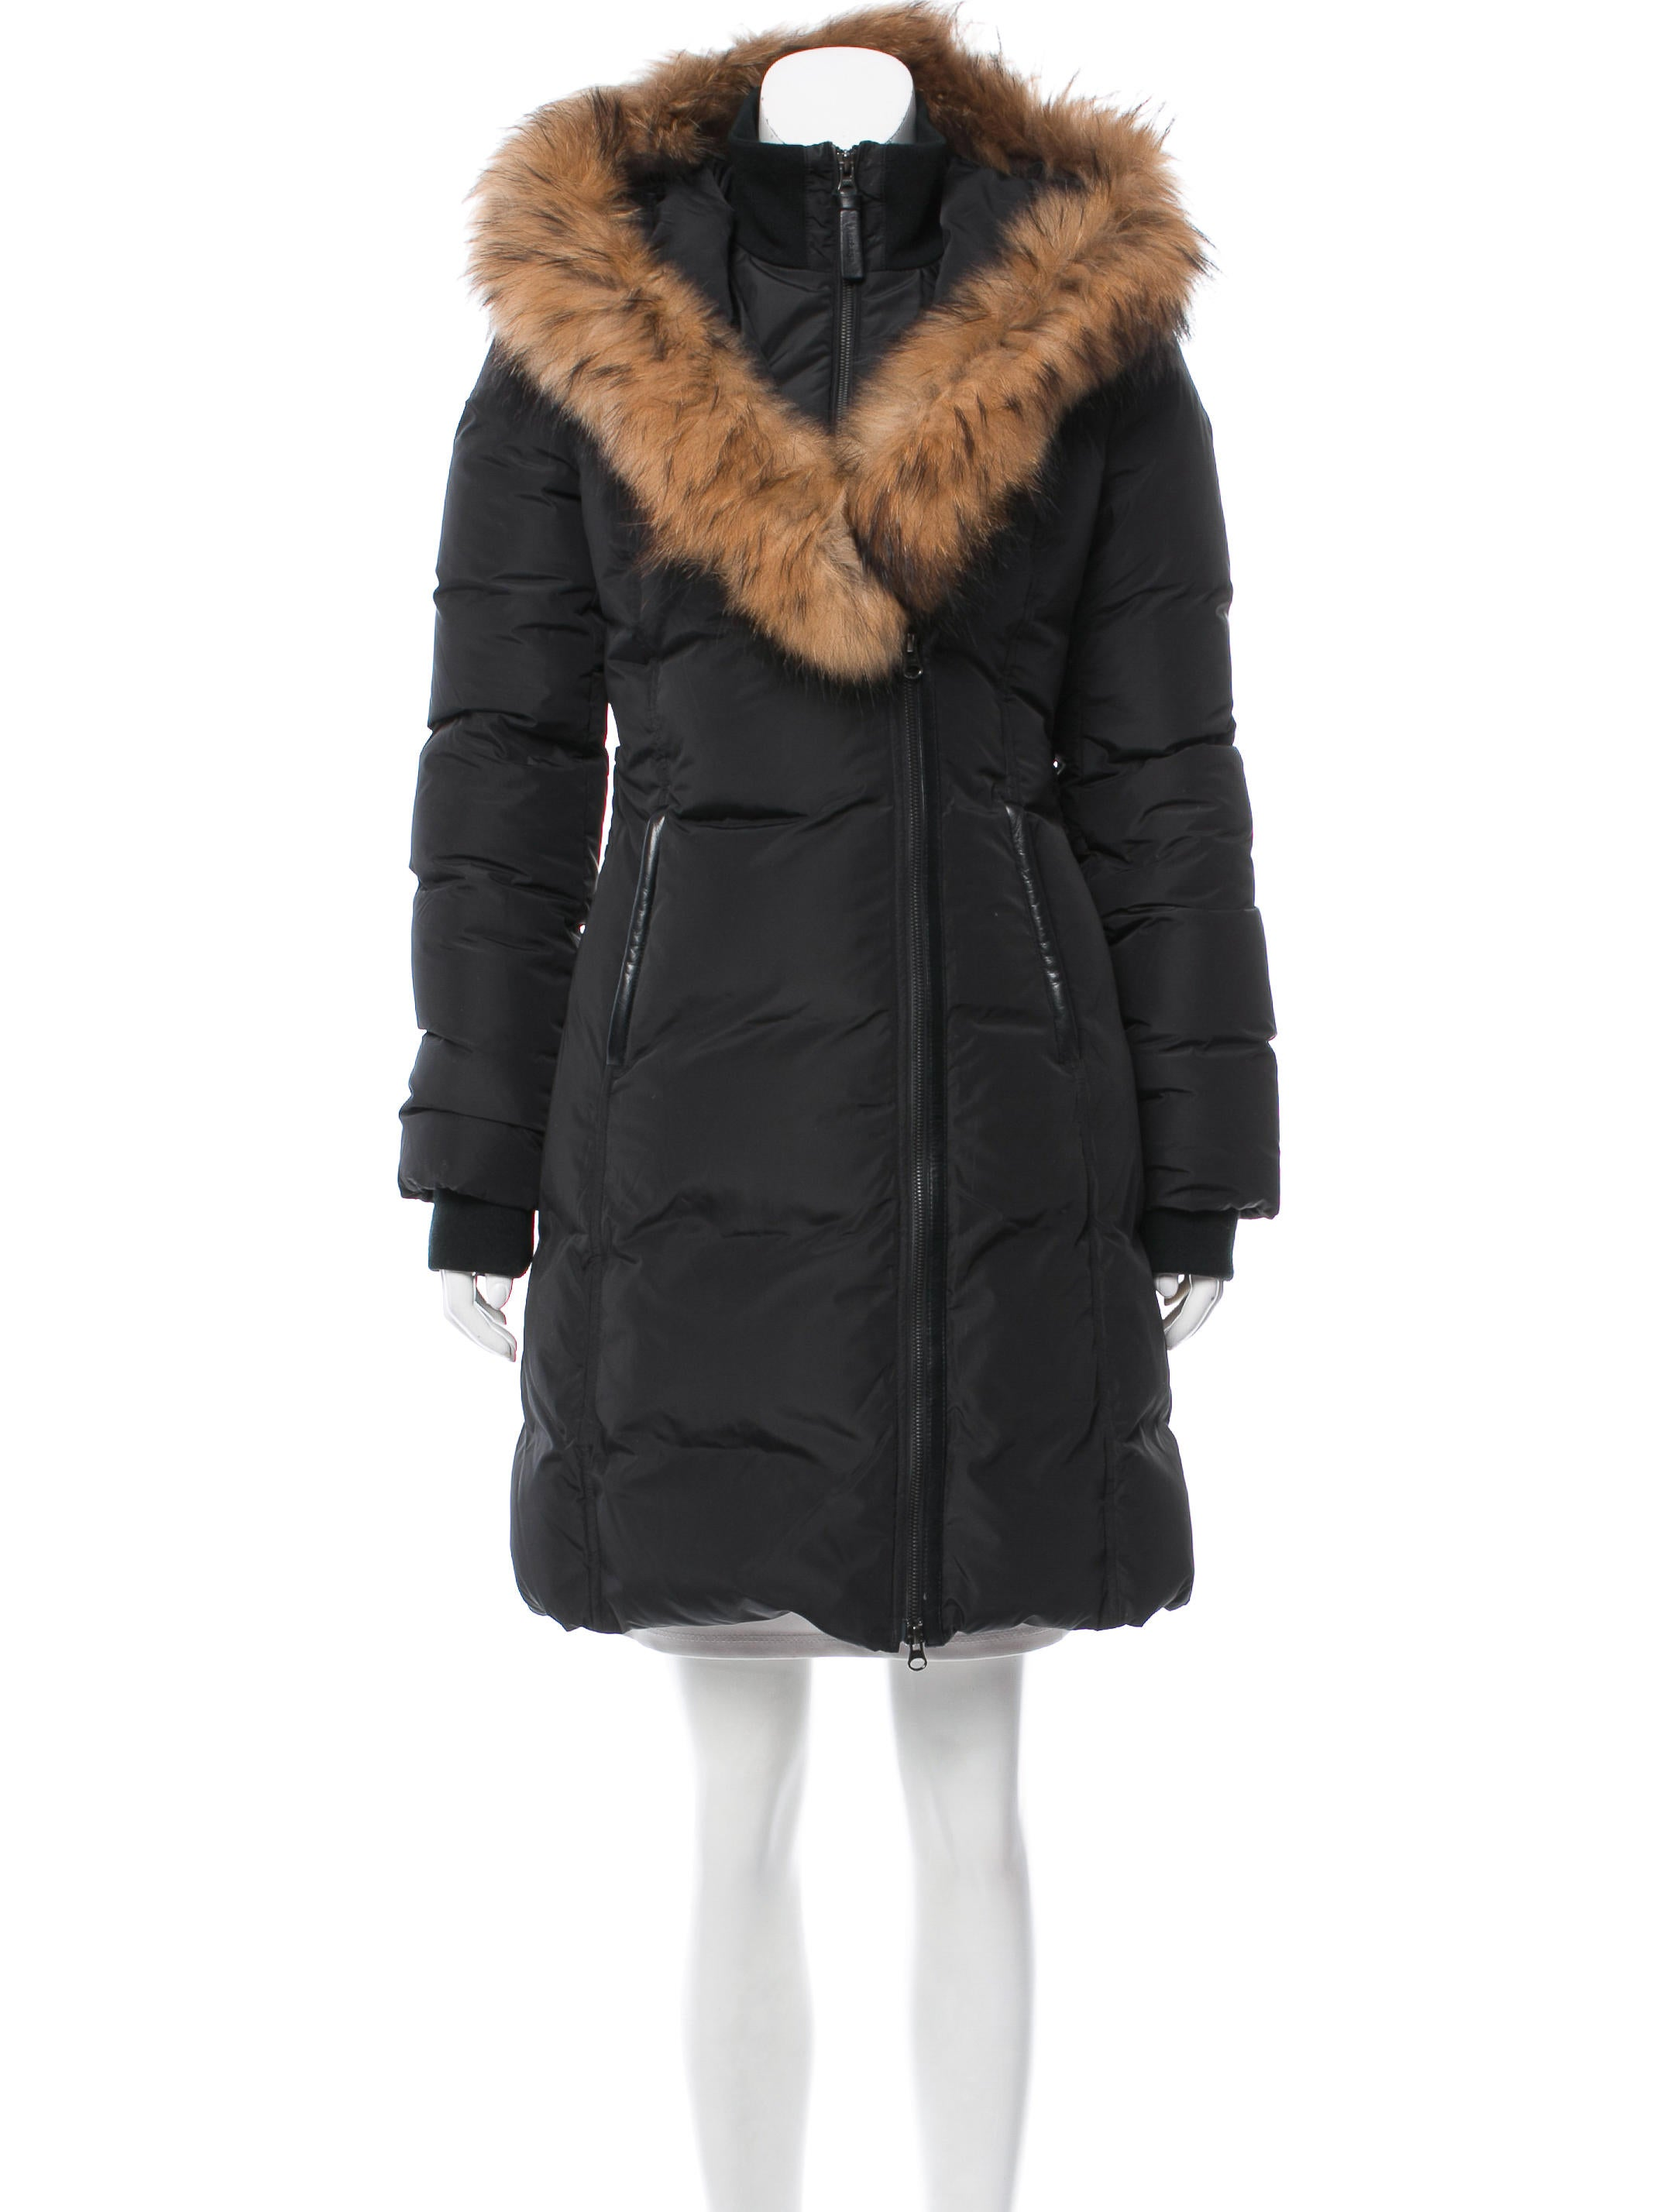 You'll simply love our plush fox fur coats, amazingly soft rabbit fur coats, and knitted fur coats. Many of our women's fur coats feature stylish fur trim—remember to look for fur coats with rabbit fur trim, fur jackets with chinchilla fur trim, and women's fur coats with raccoon fur trim.